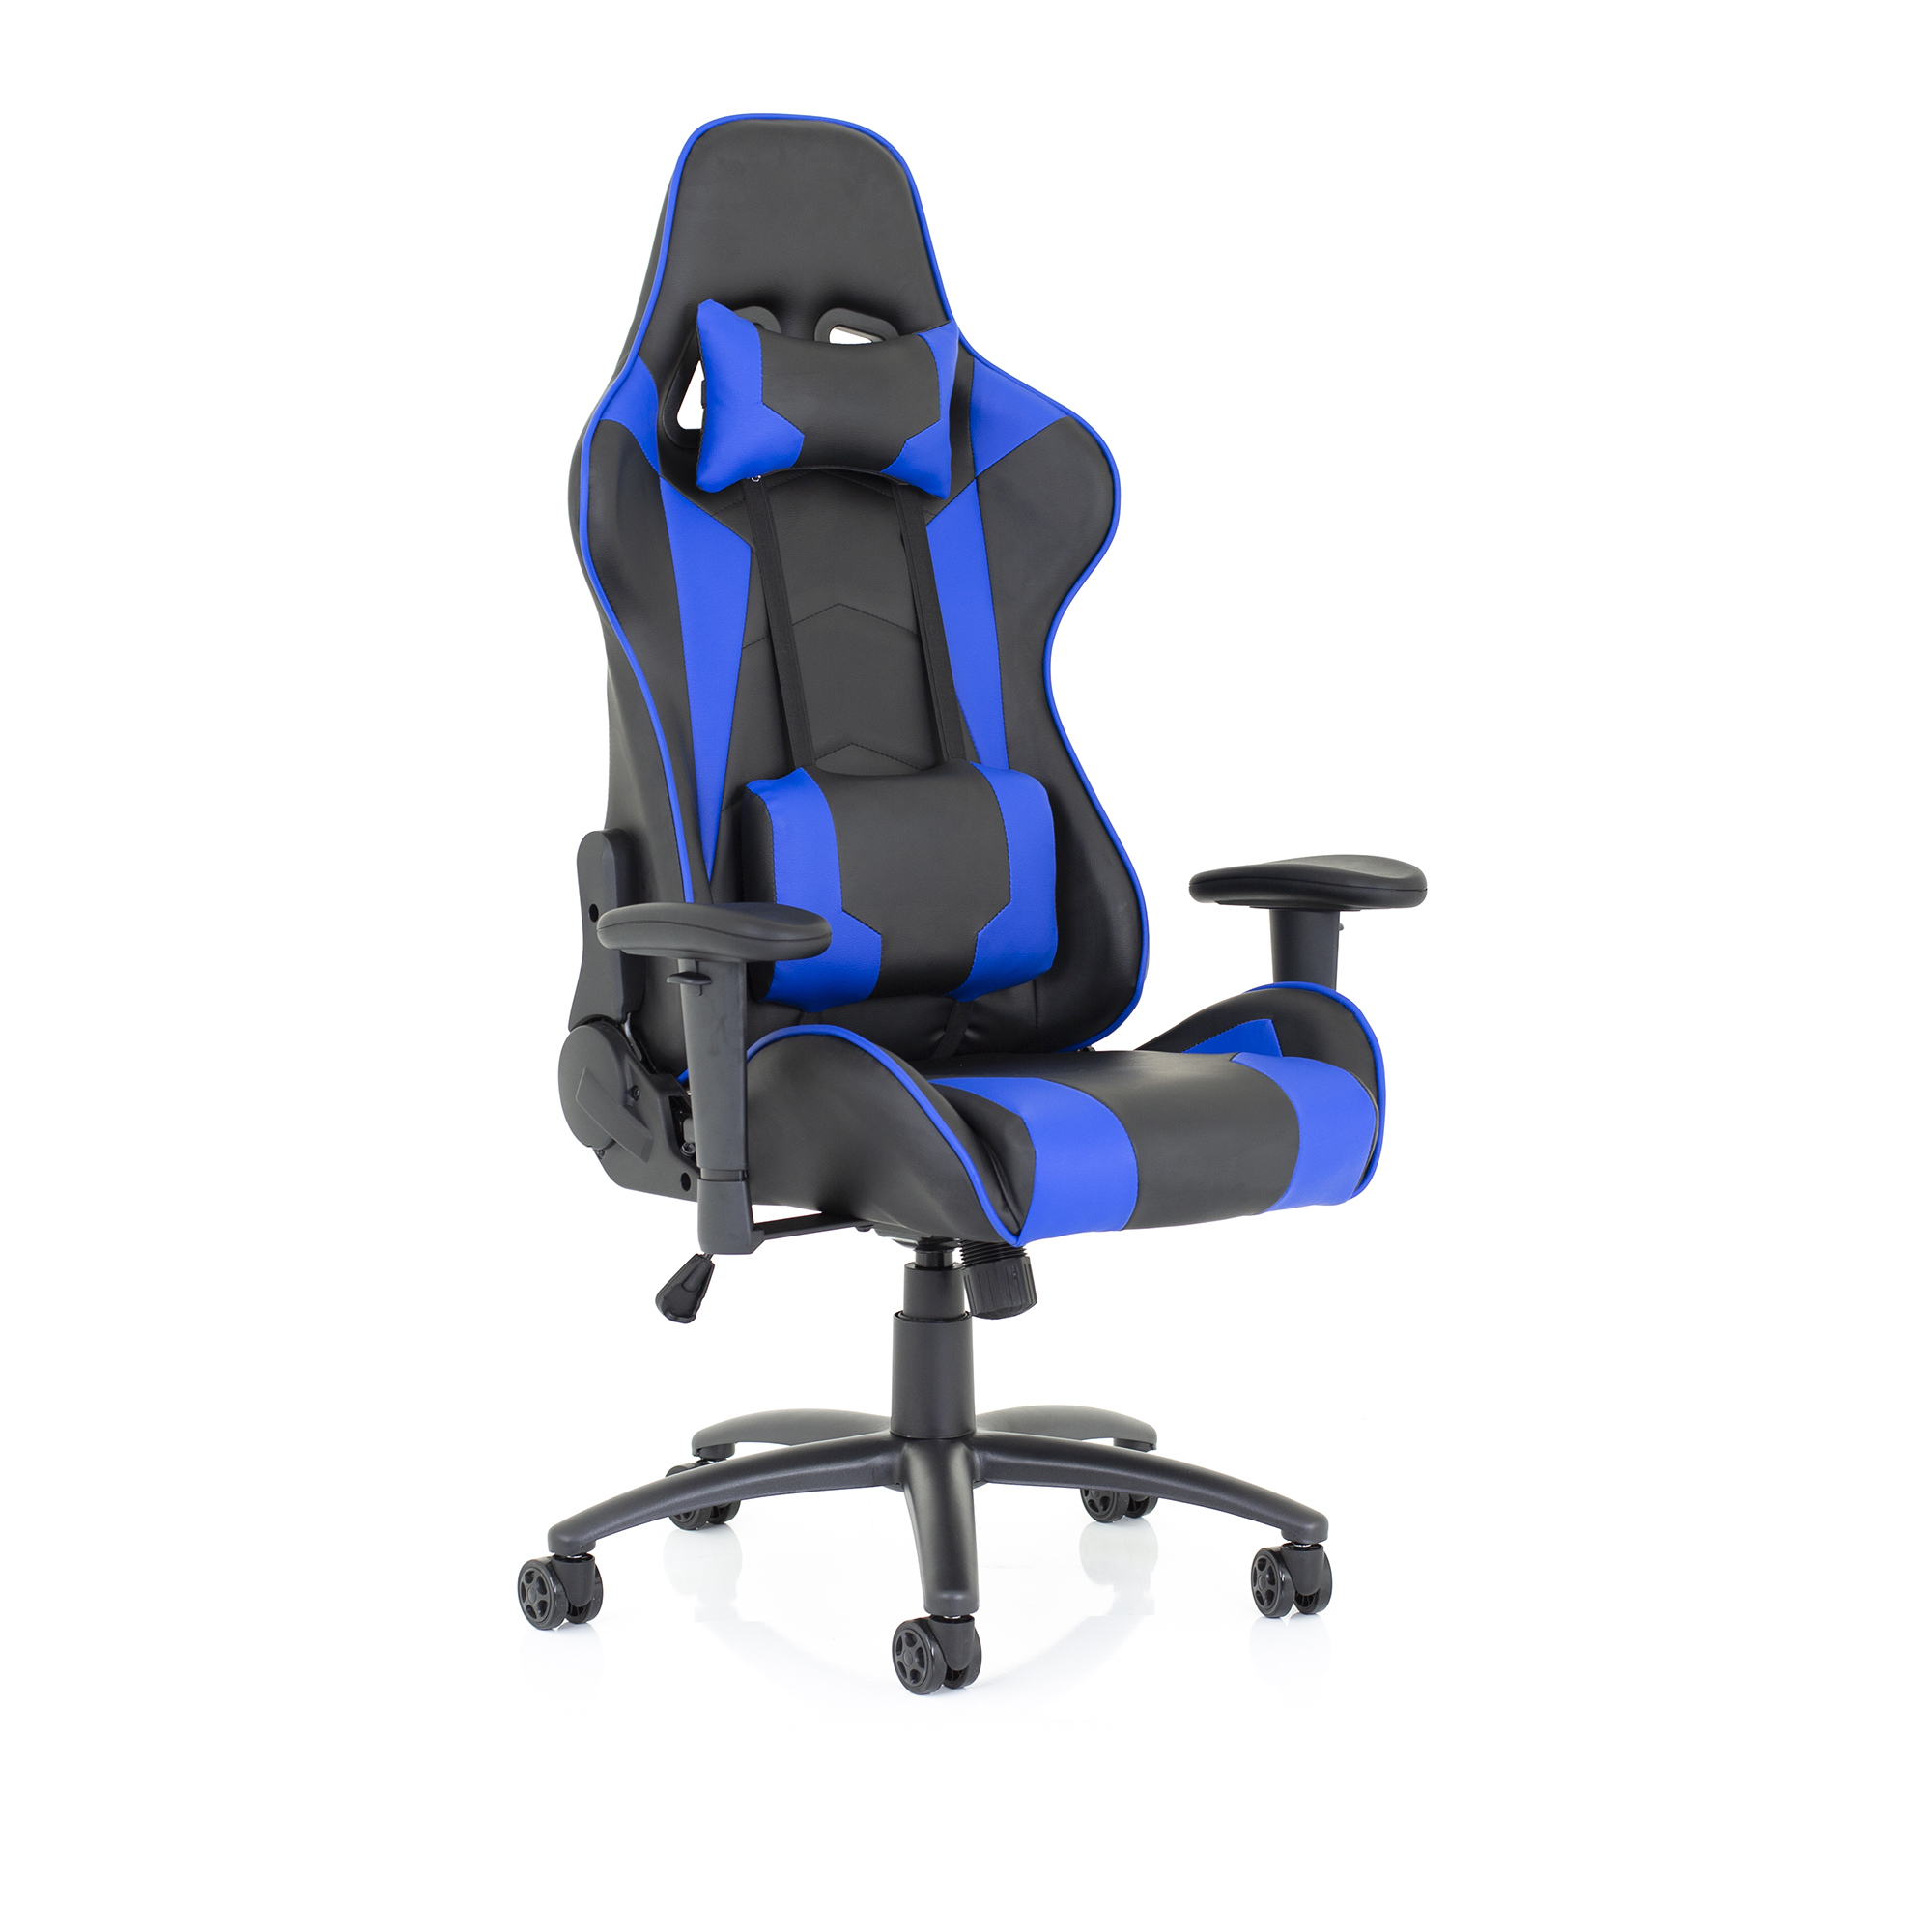 Trexus Ascari Racing Chair Bonded Leather Blue and Black Ref EX000207